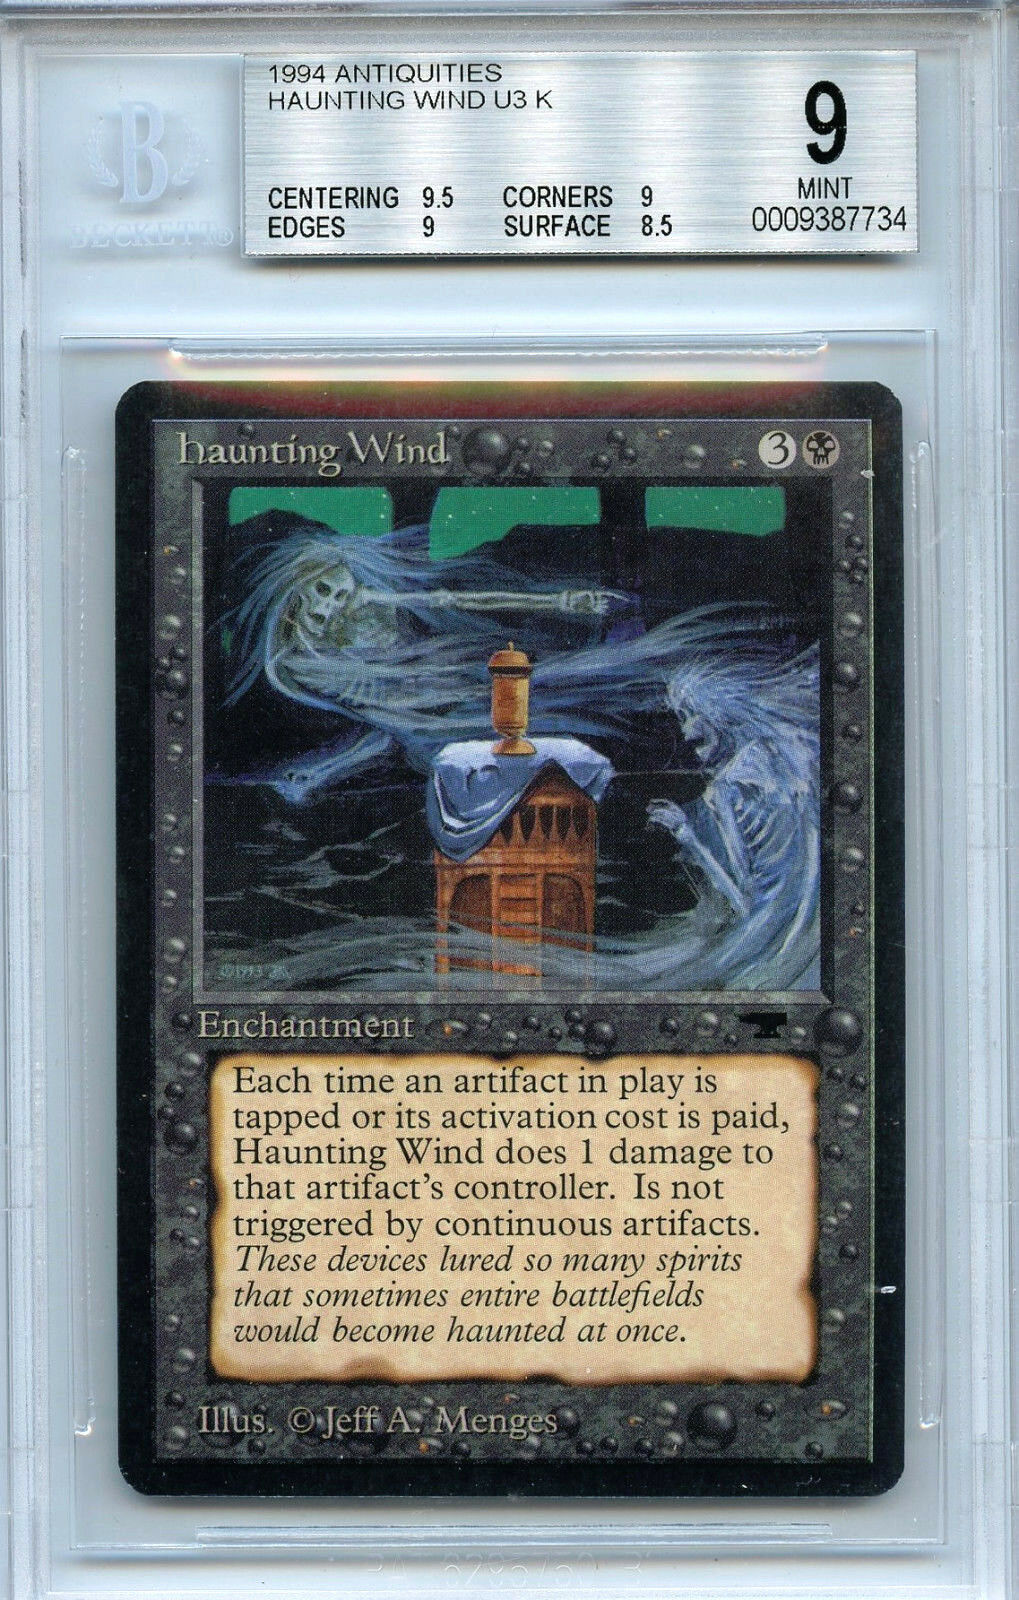 MTG Antiquities Haunting Wind BGS 9.0 (9) Mint Card Magic the Gathering WOTC 734